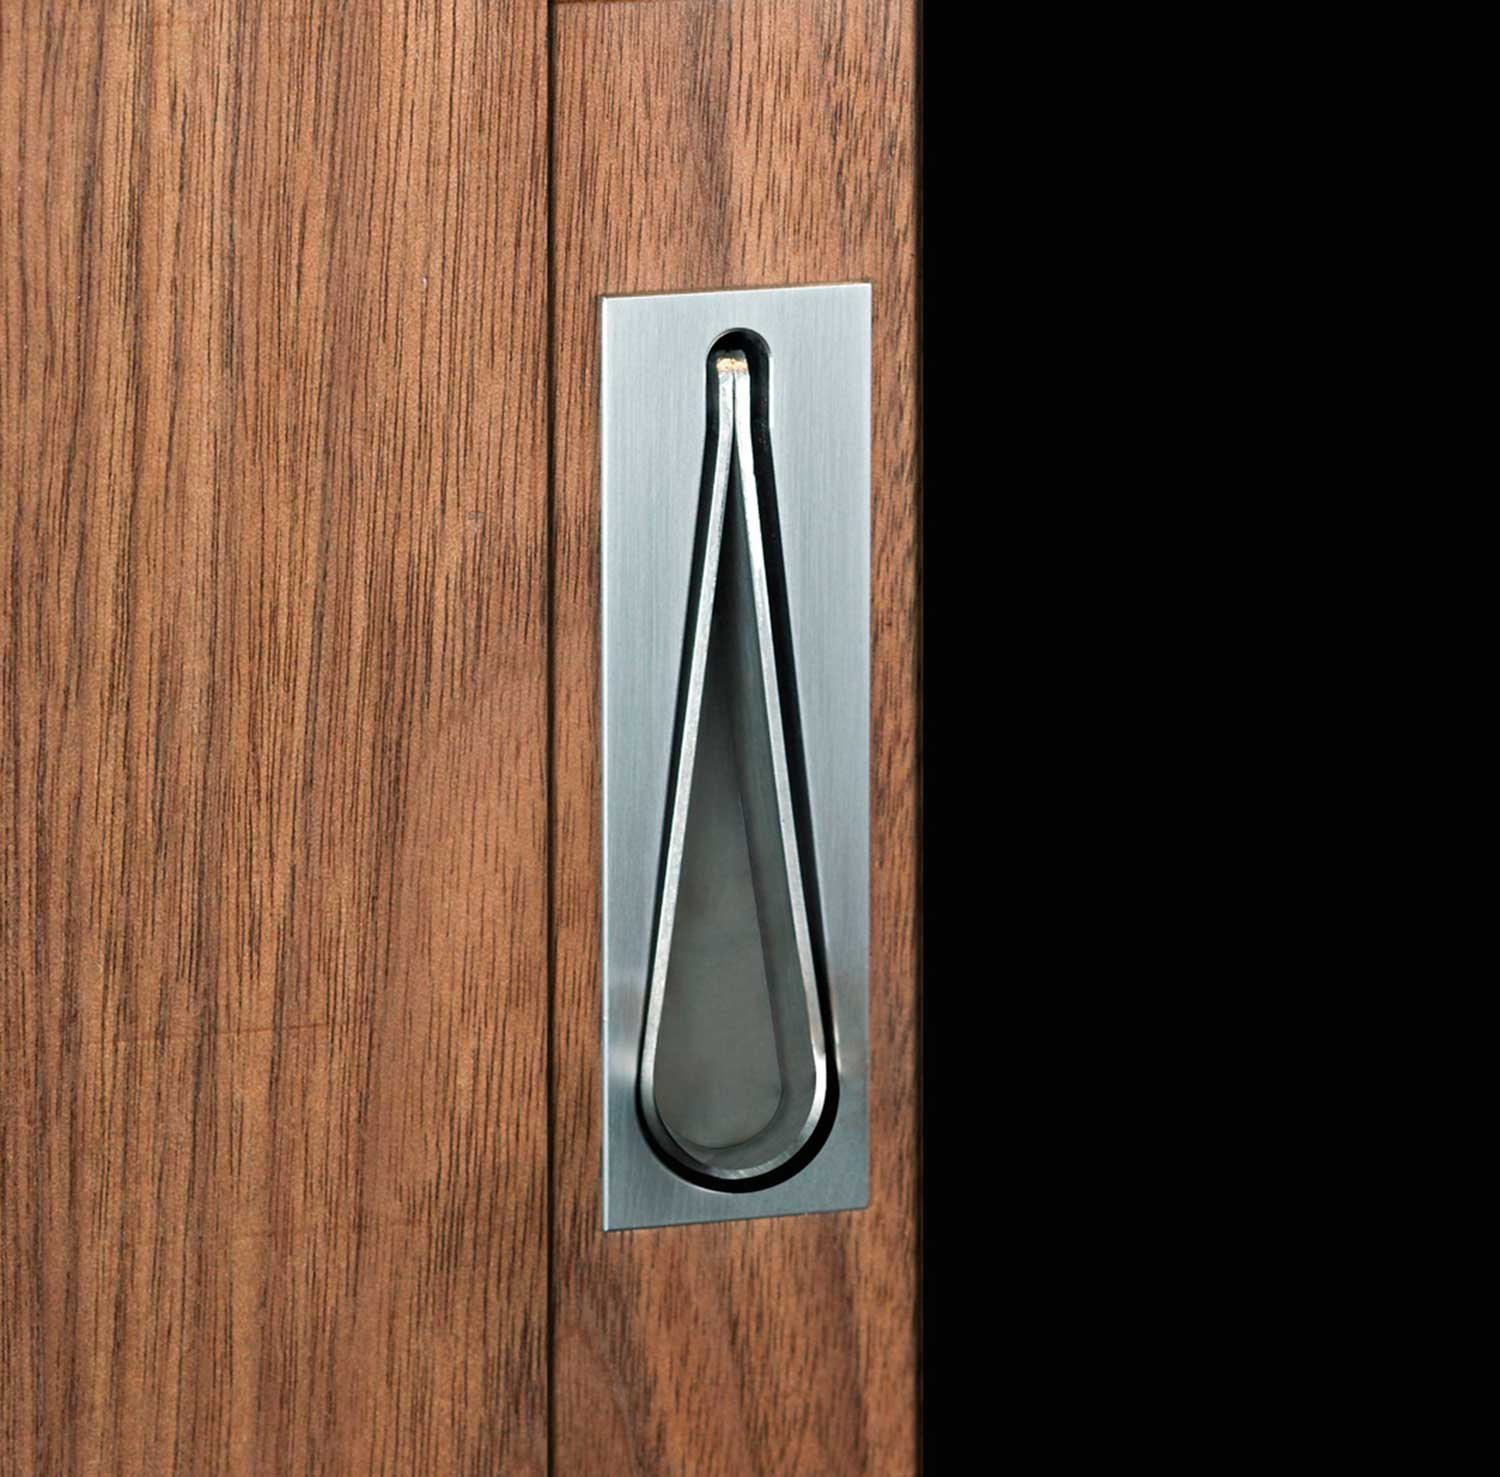 Reveal Designs Catalog Pocket Door Hardware